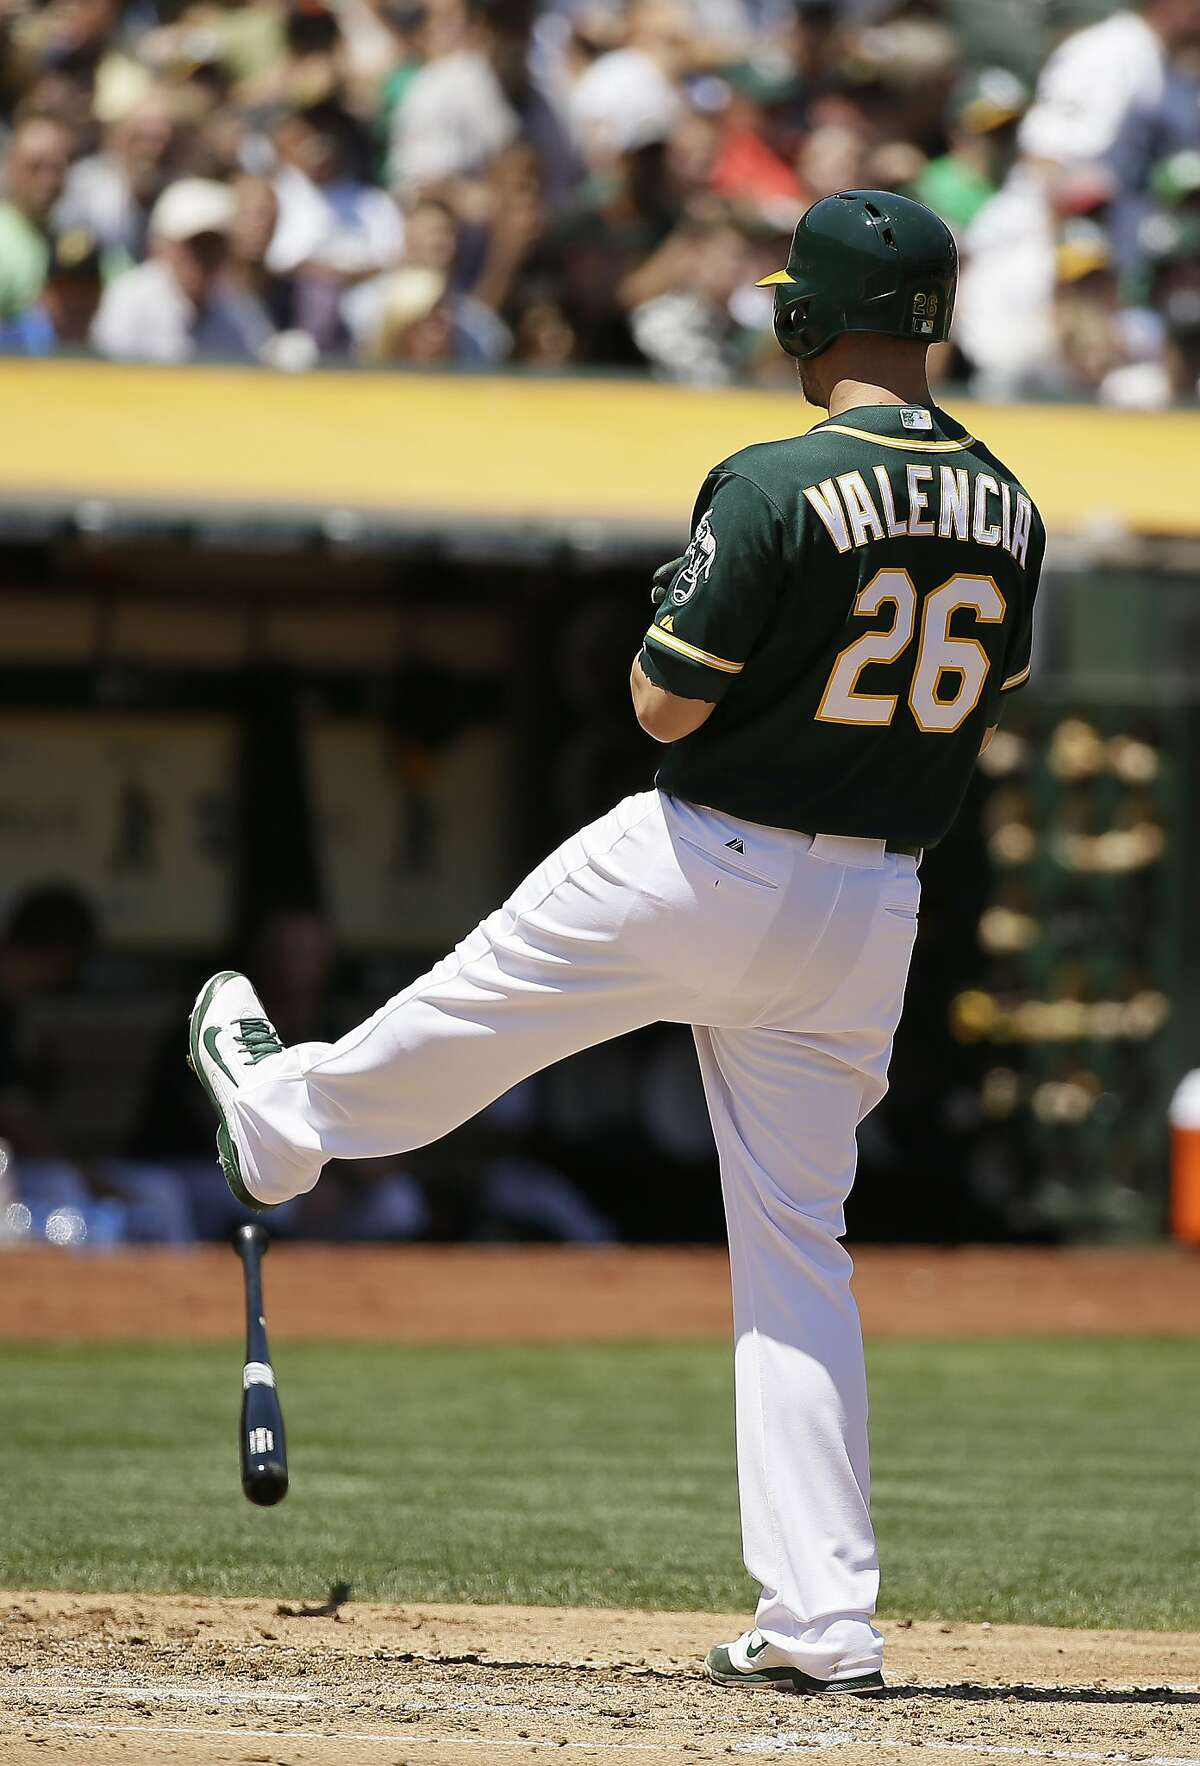 Oakland Athletics' Danny Valencia reacts after striking out with the bases loaded in the third inning of their baseball game against the Baltimore Orioles Wednesday, Aug. 5, 2015, in Oakland, Calif. (AP Photo/Eric Risberg)